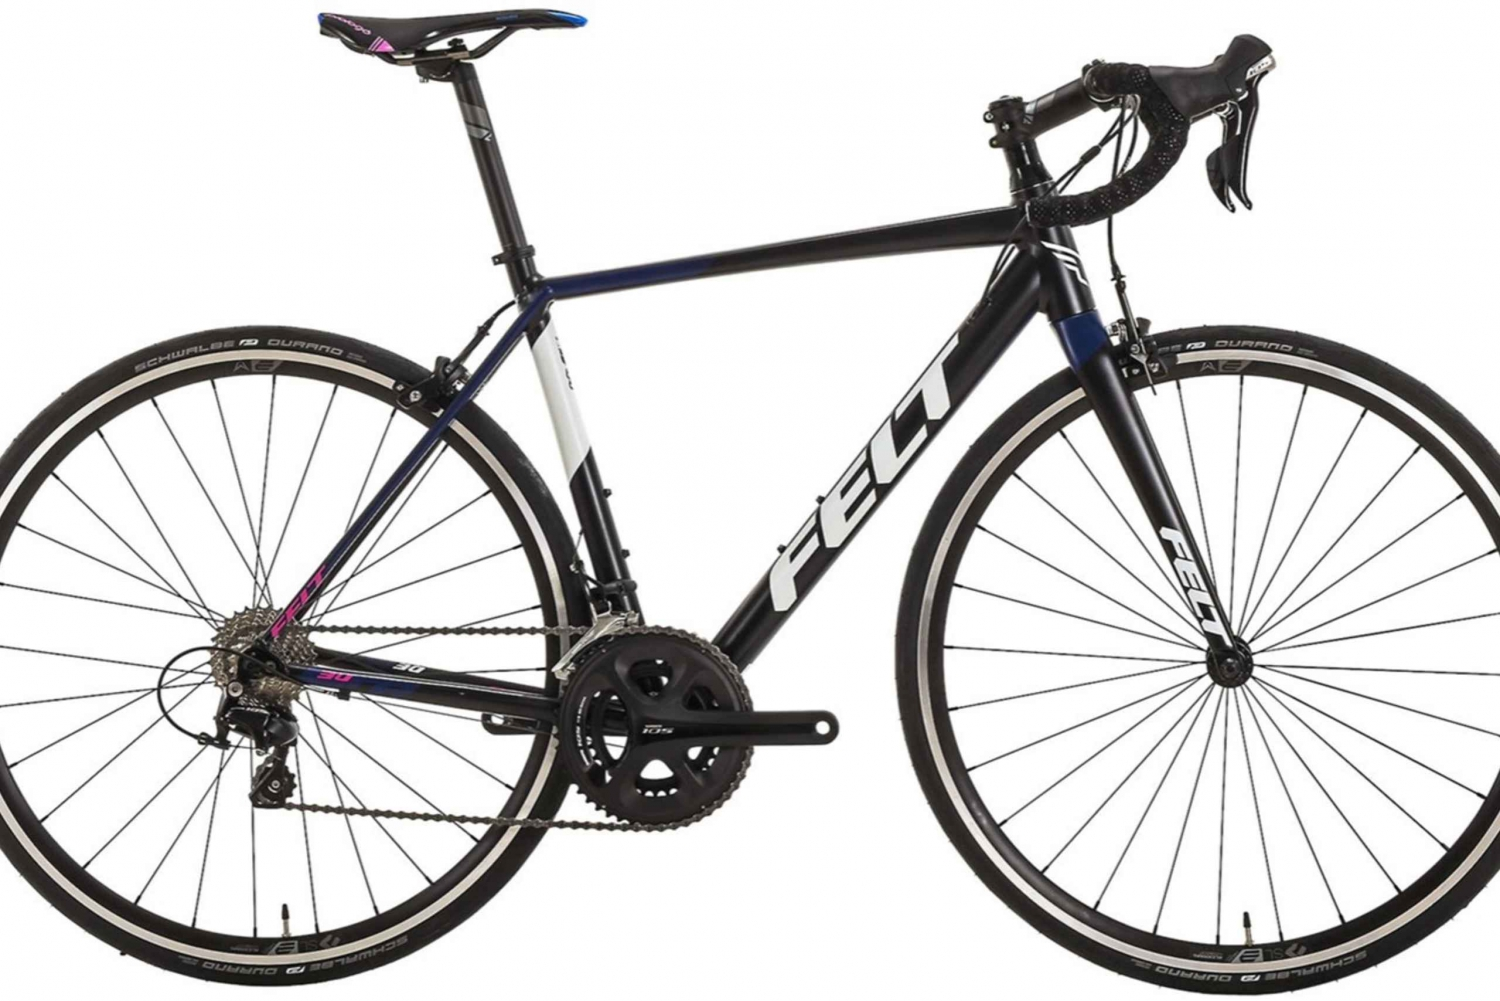 Costa Adeje: Basic Road Bike Rental